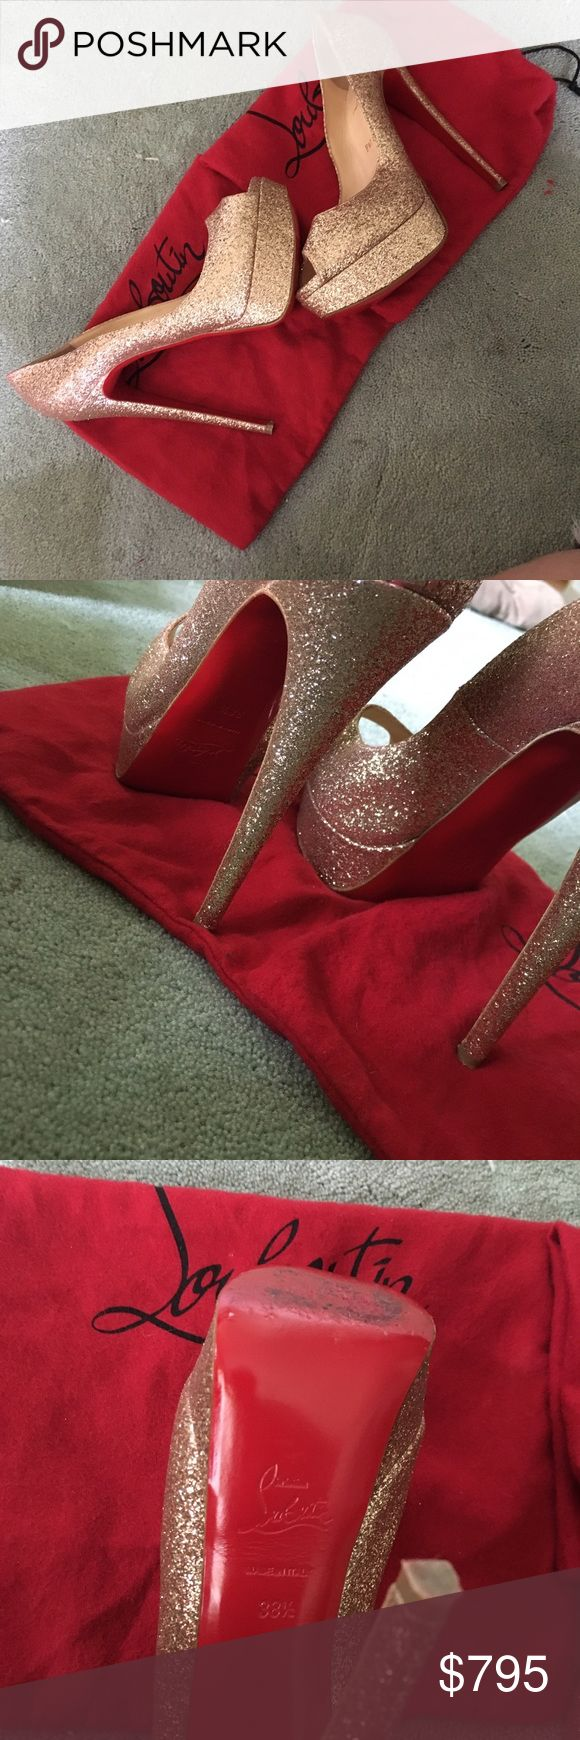 Christian Louboutin peep toe gold glitter heels Where to start? These are 150mm Lady Peep Toe in Gold glitter. They shine from a mile away- and are so high you can be seen for a mile away. I wore these once to my best friends wedding, which was a mistake since I was the maid of honor, I had a lot of running around to do. I had to take these off and never managed to put them back on ever again. They are in great condition, beautiful gorgeous shoes!!! Christian Louboutin Shoes Platforms